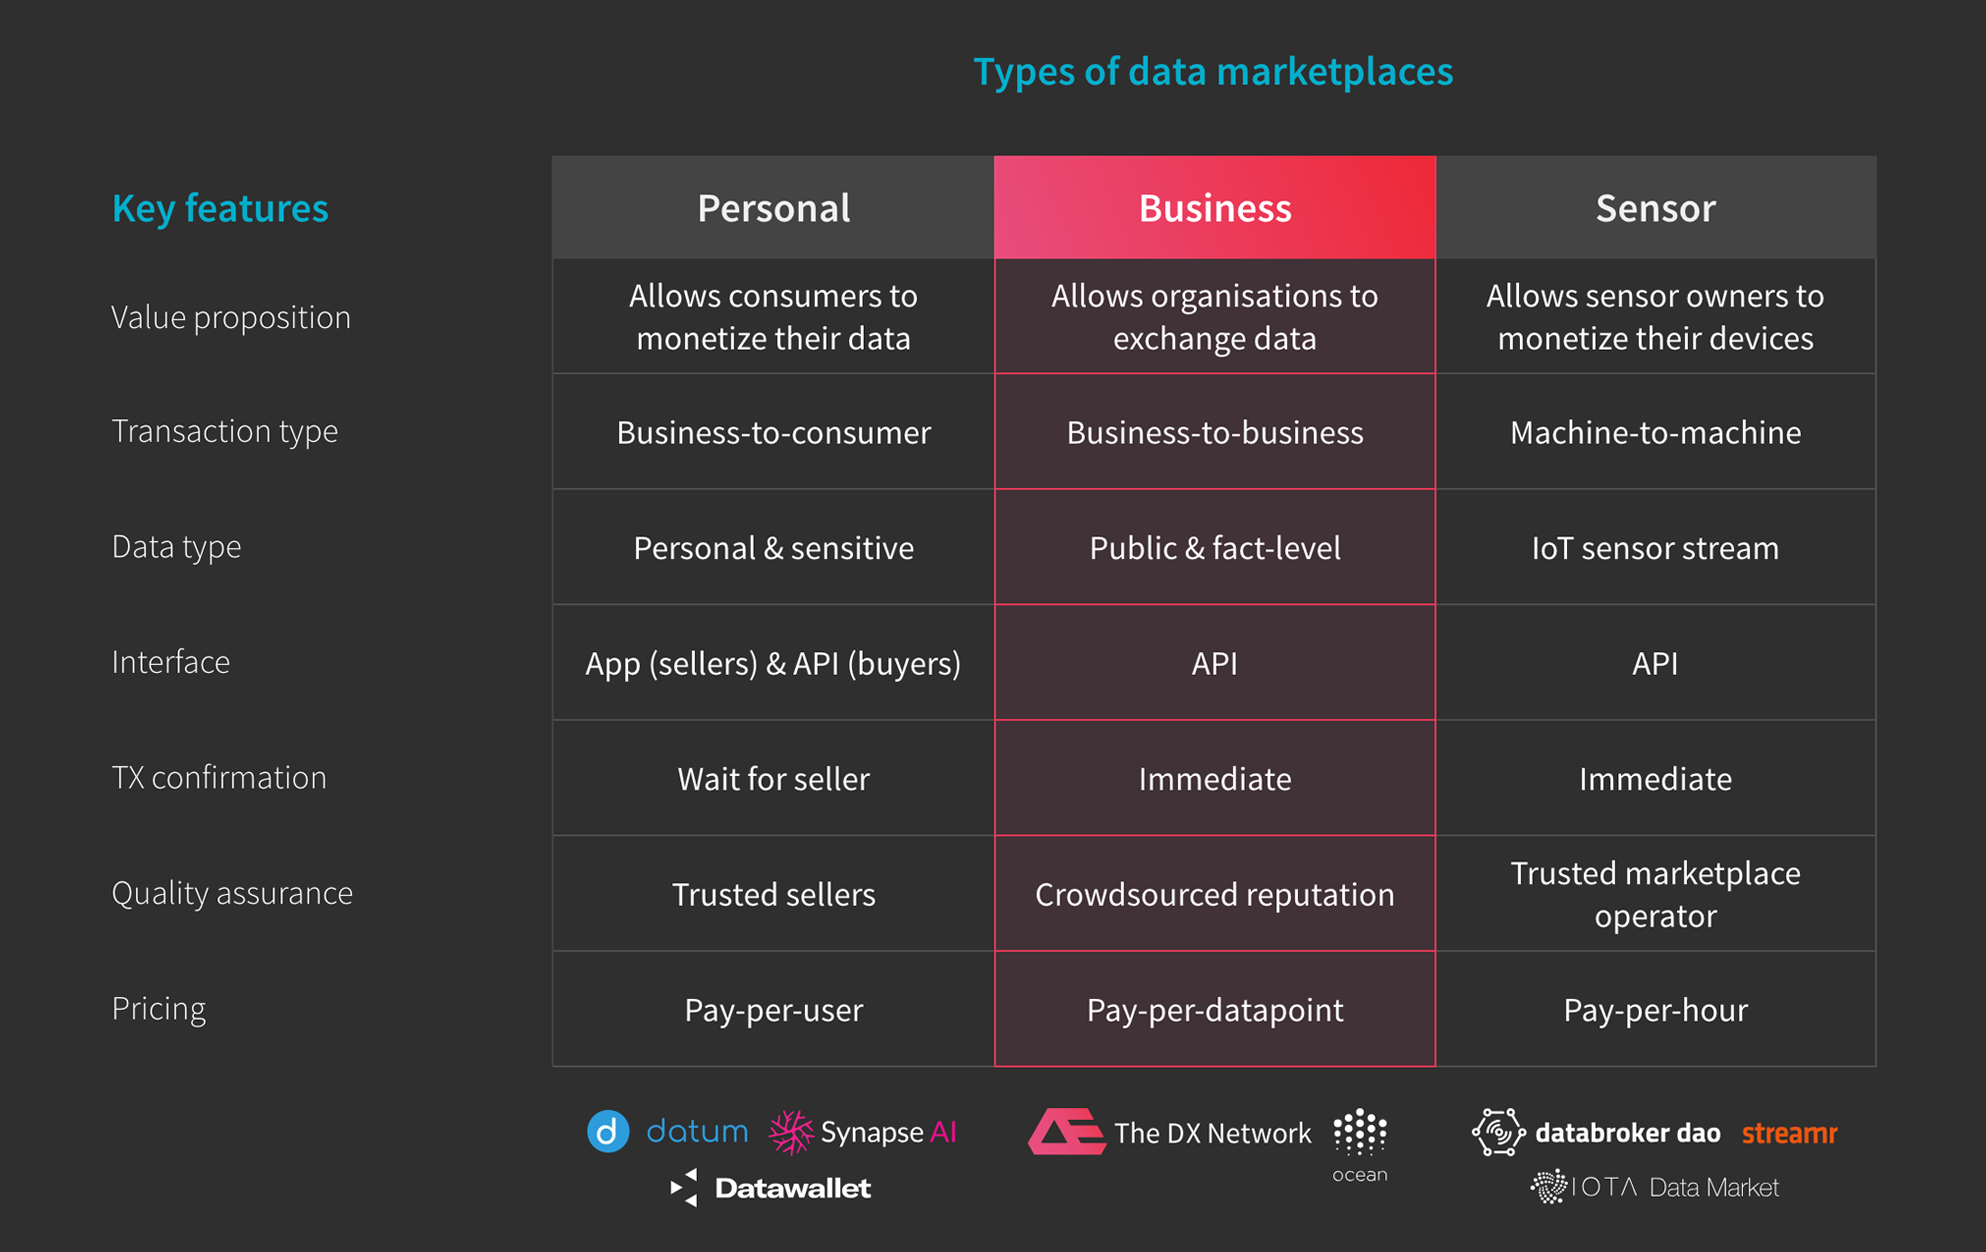 What are the types of data marketplaces and key features of each type?